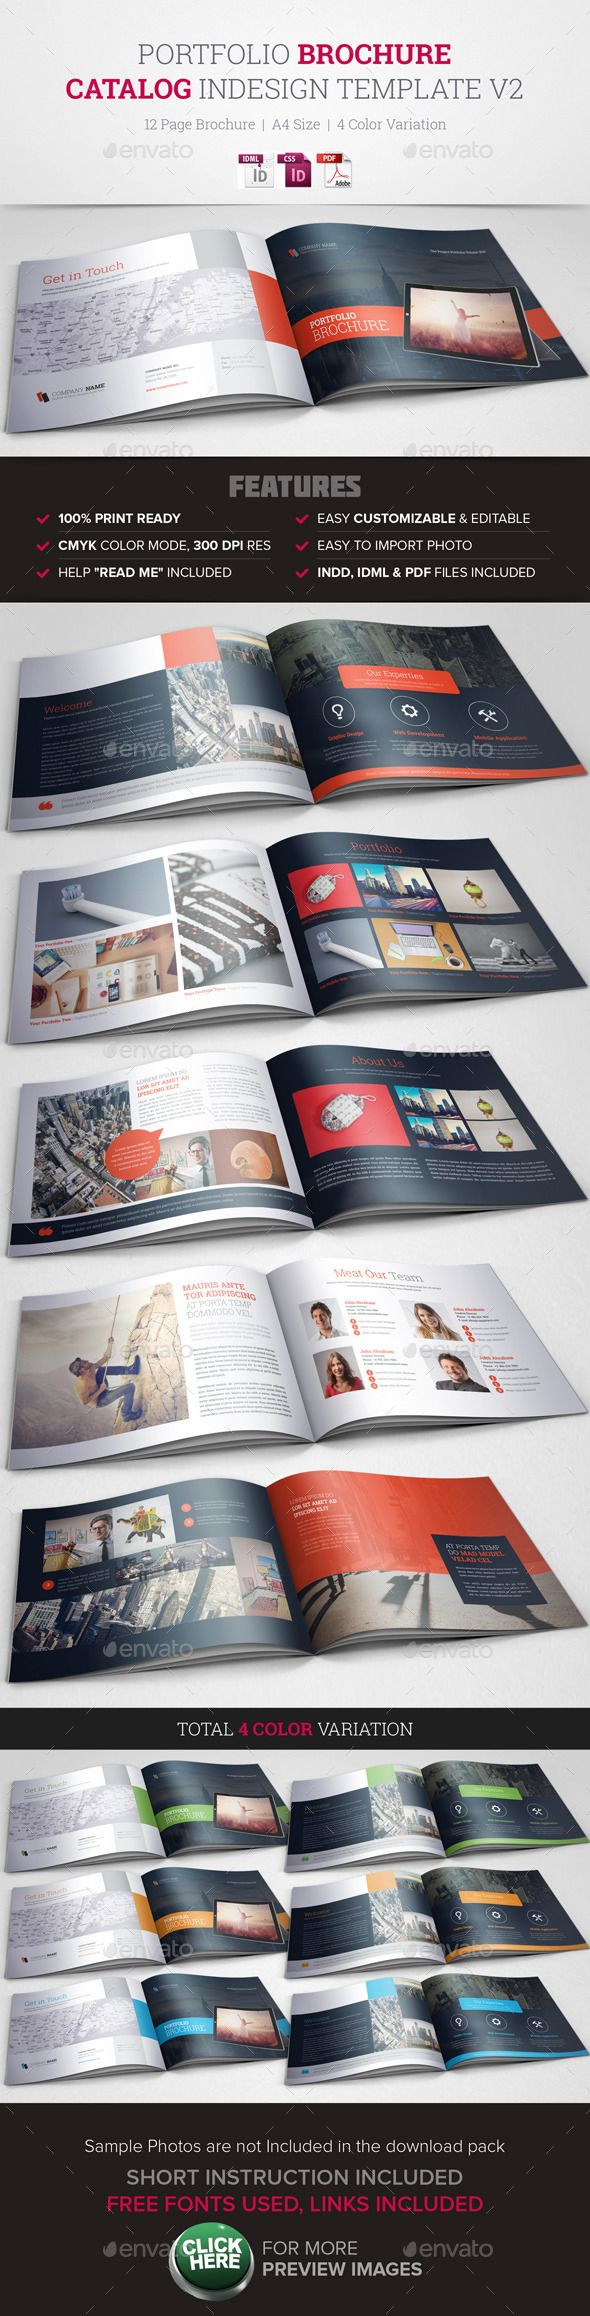 Portfolio Brochure InDesign Template v2 | Annual Reports | Pinterest ...